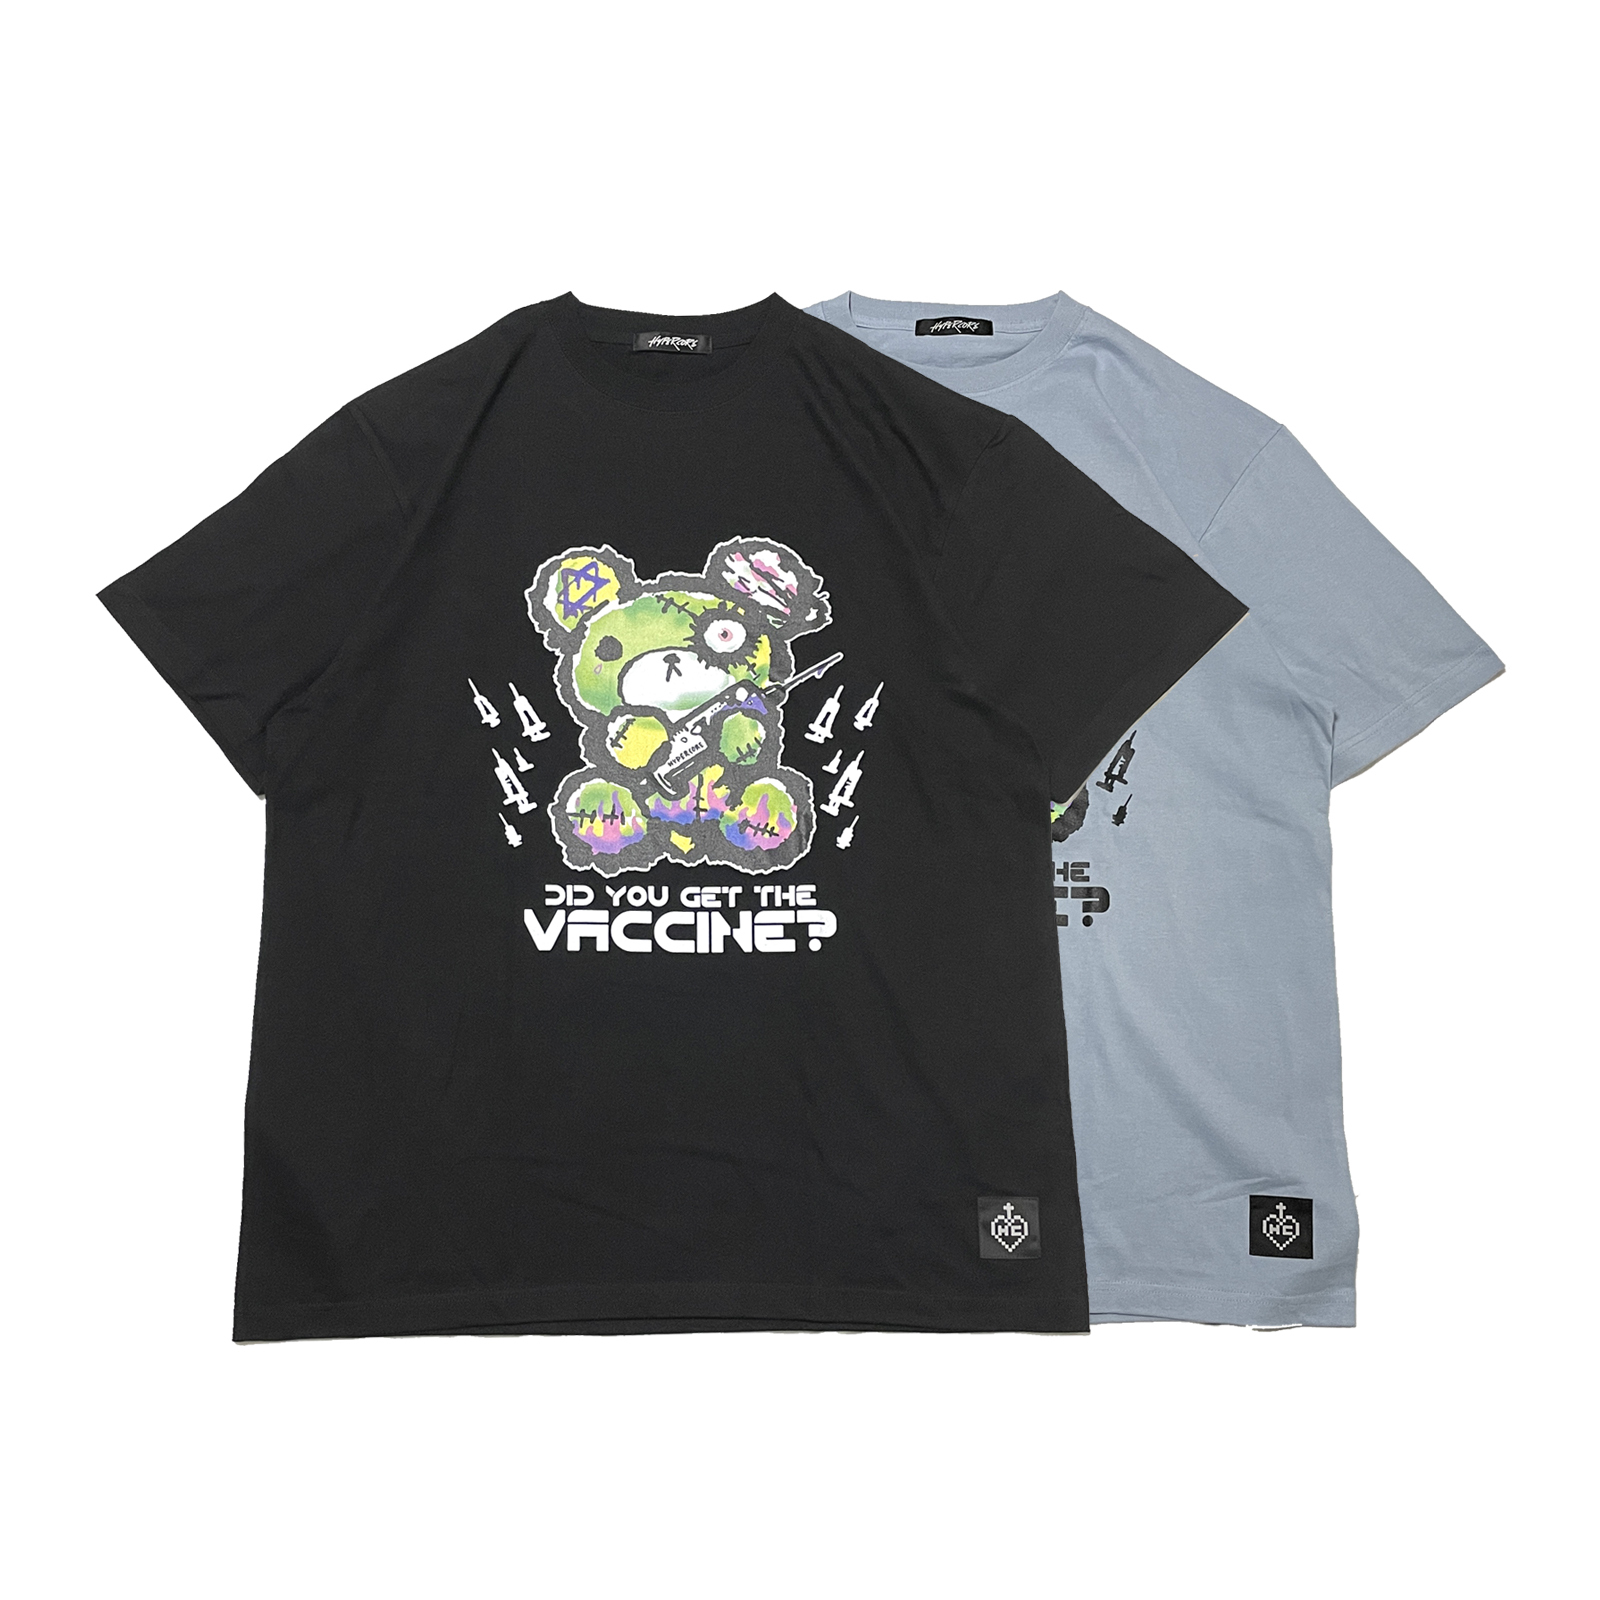 T-376 DID YOU GET THE VACCINE? Tシャツ